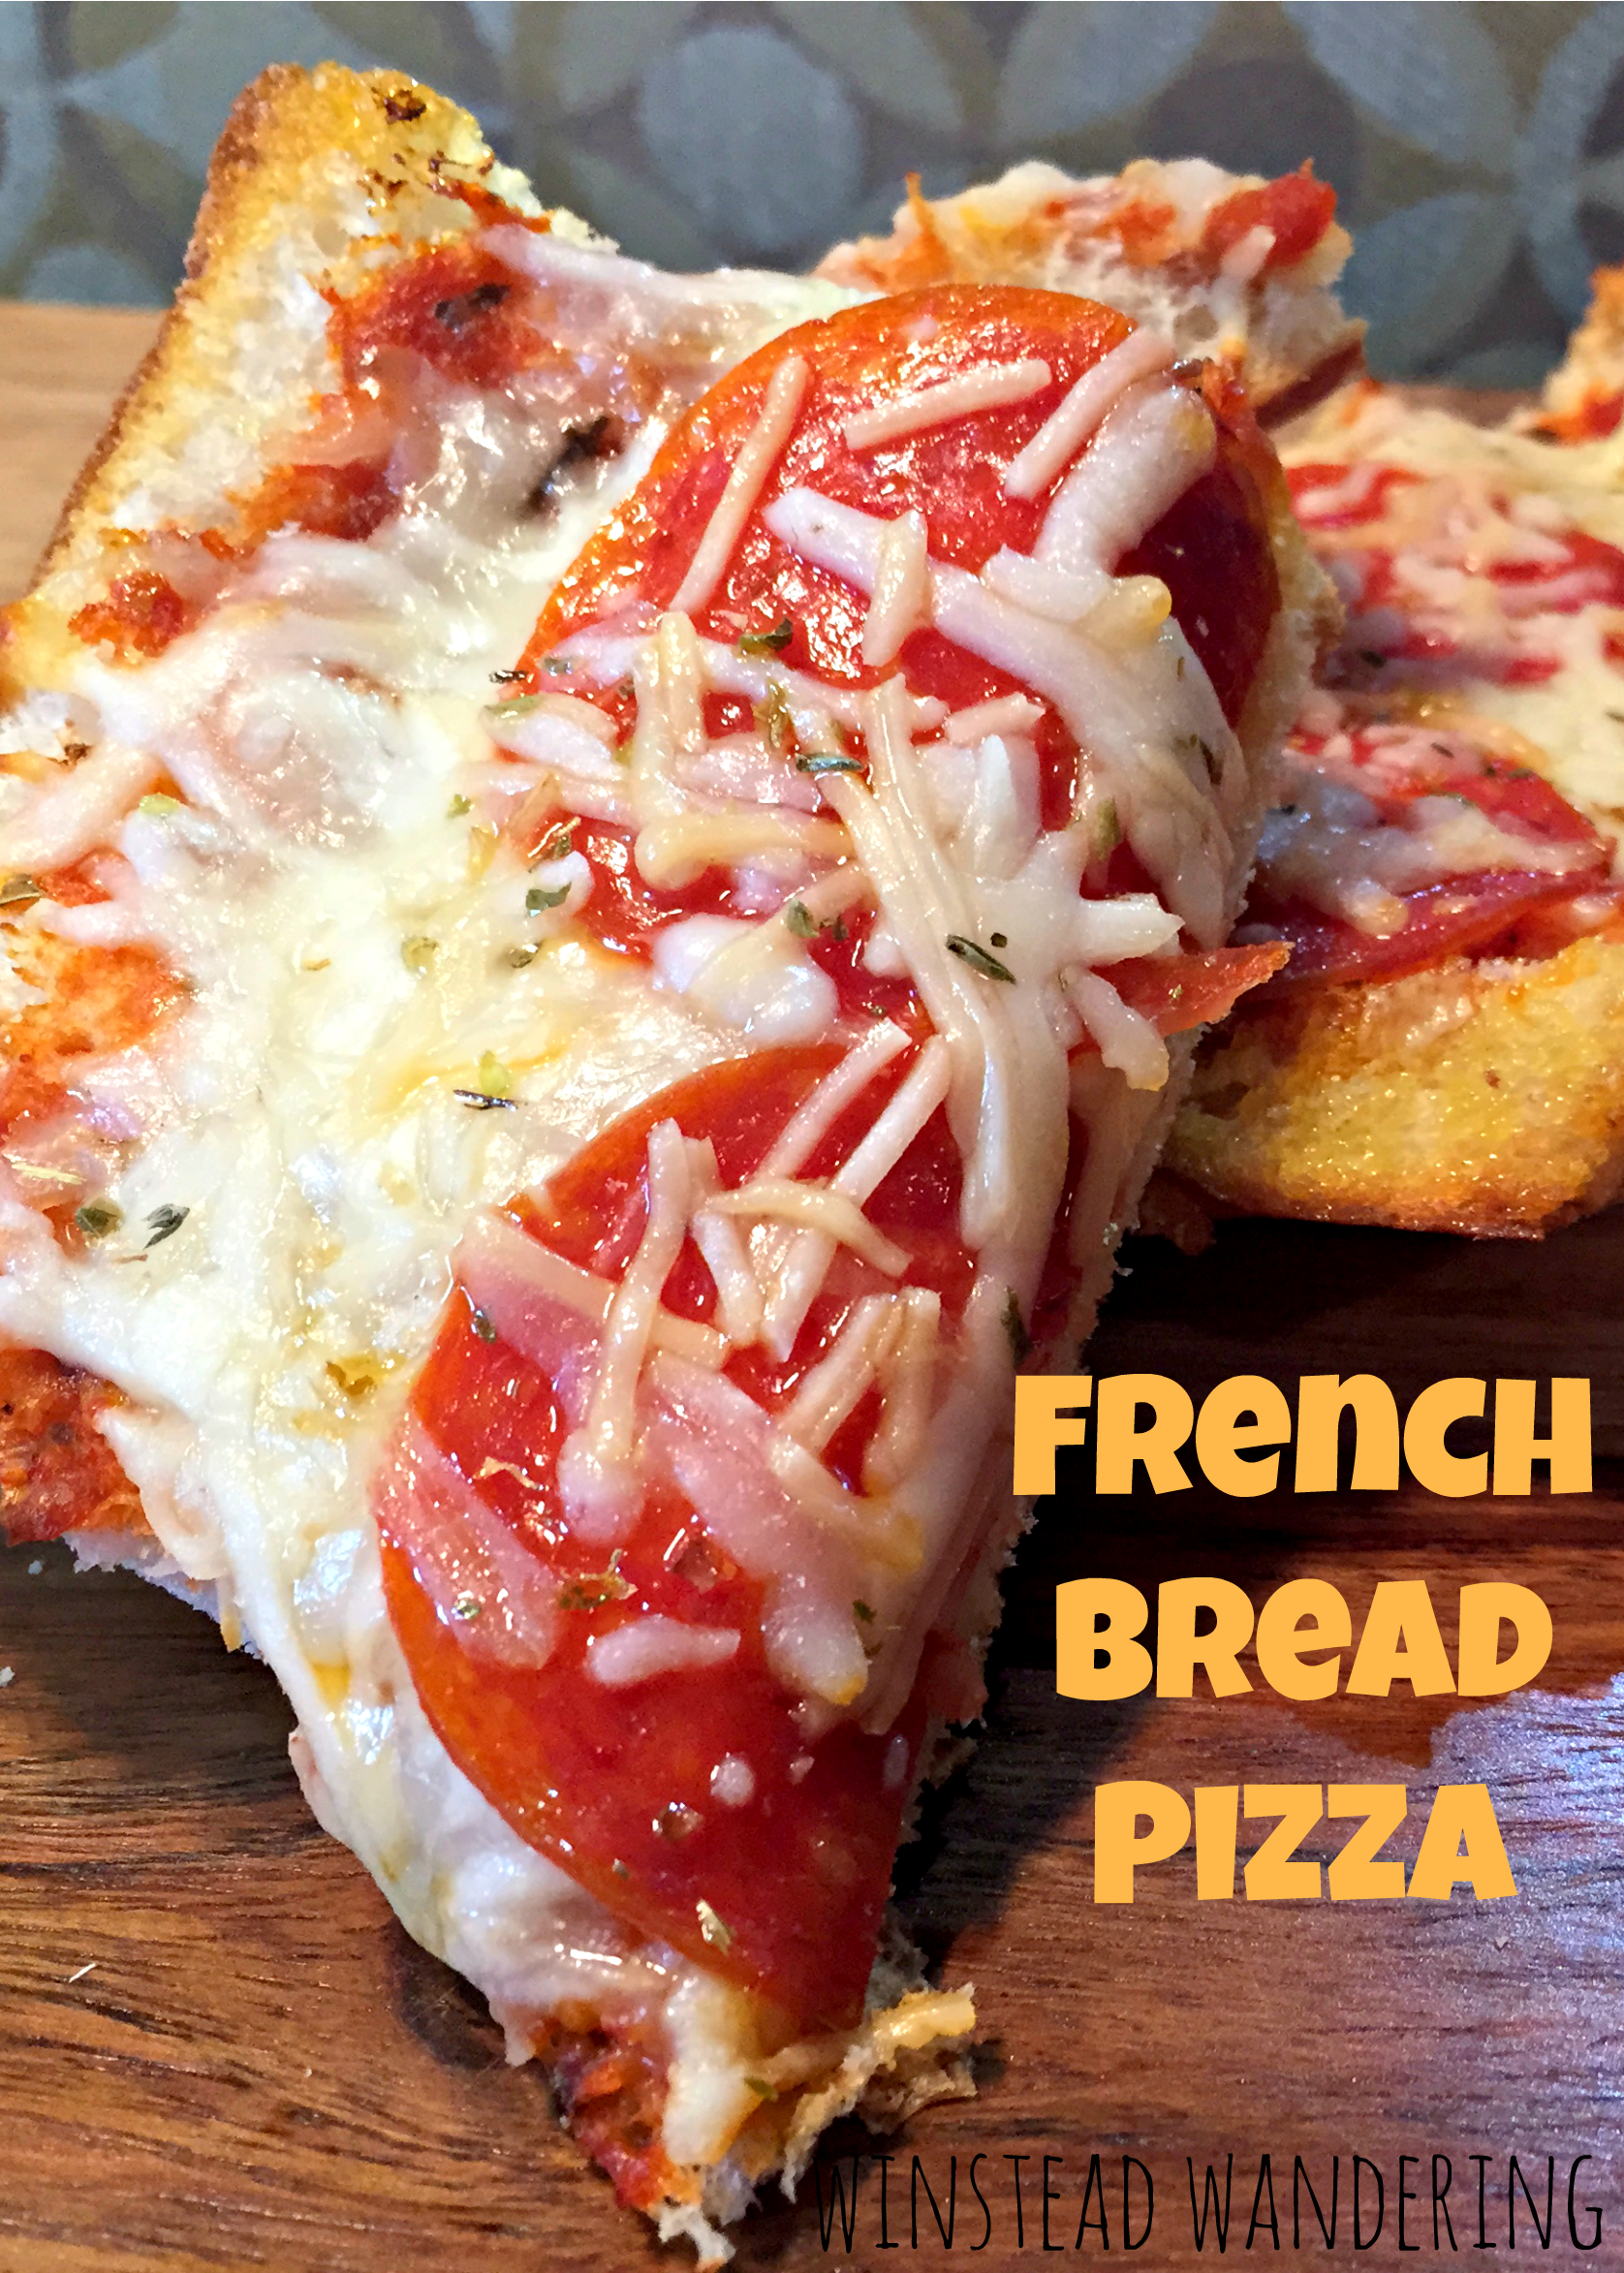 This pizza is the easiest meal you'll ever make. You can use whatever toppings you want and use $1 bread from Walmart. You can't beat cheap and tasty! | winstead wandering